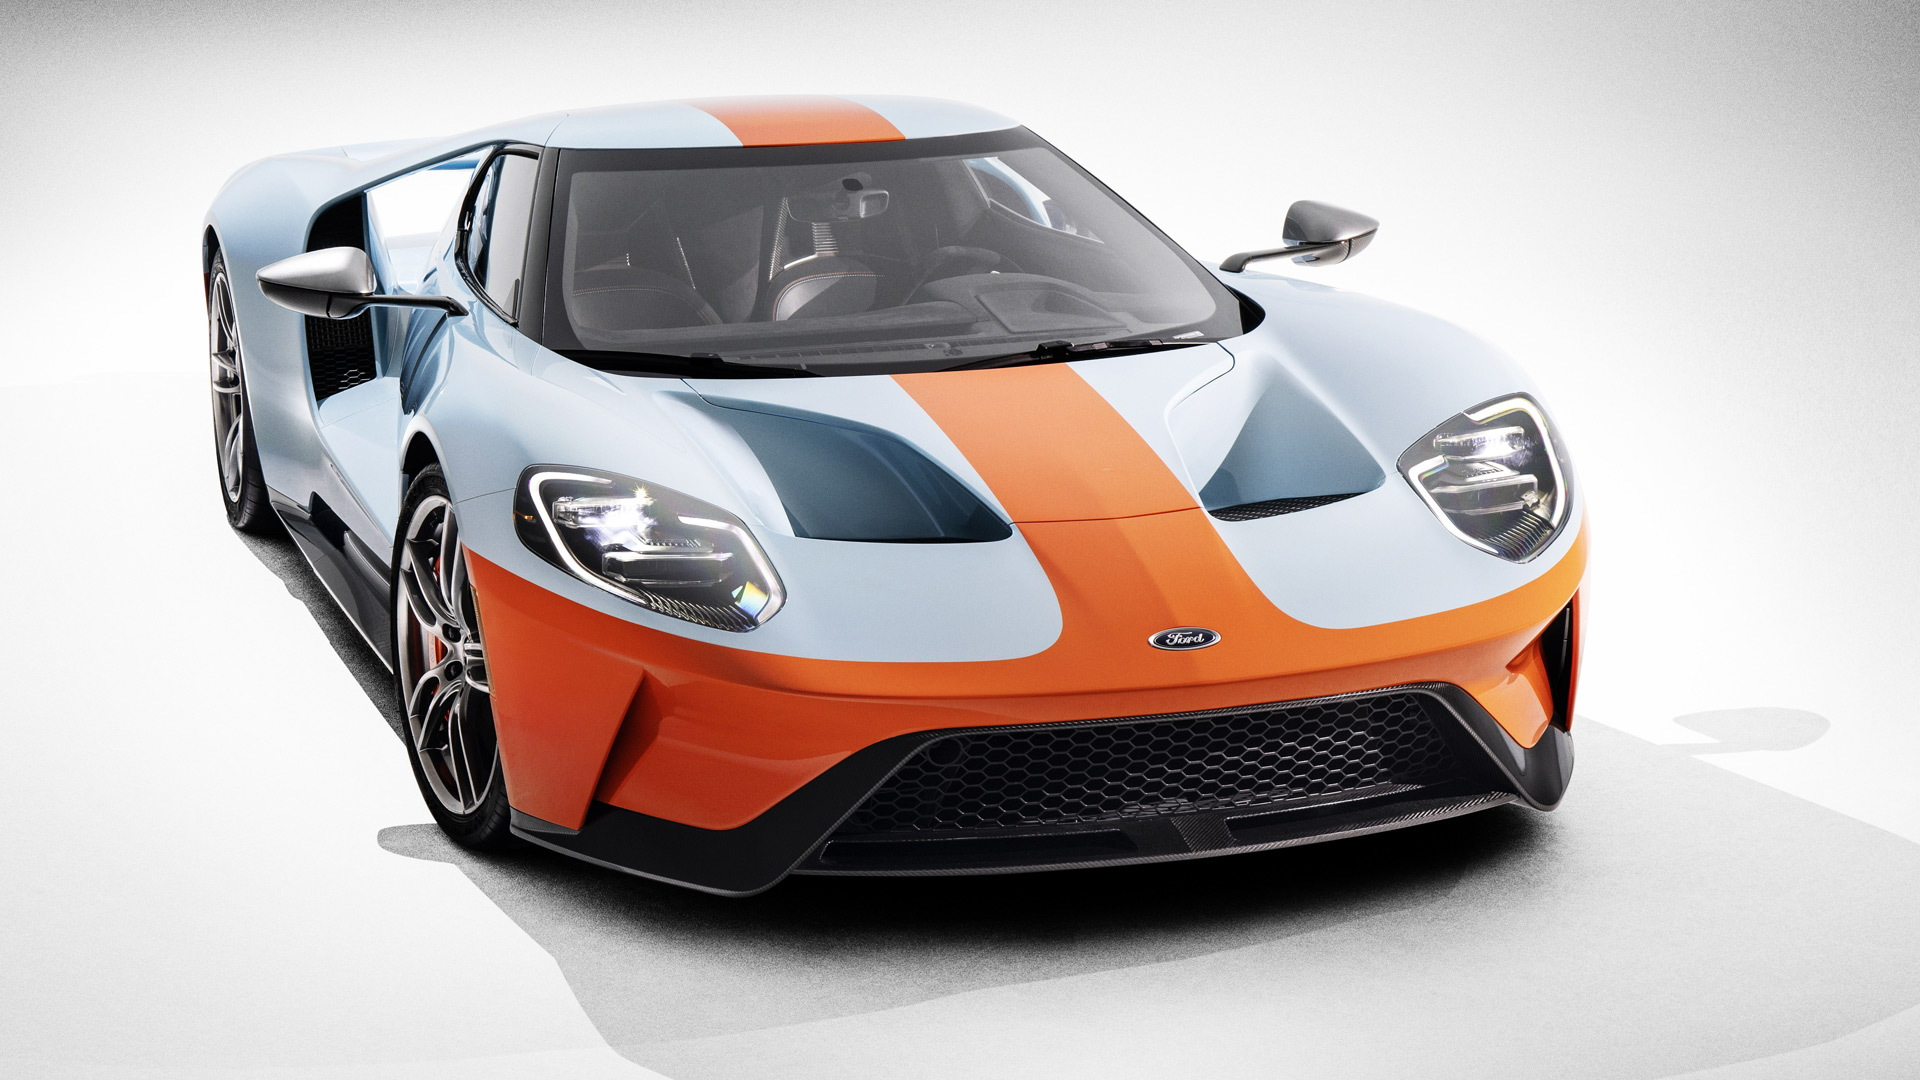 2019 Ford GT Heritage Edition Wears Famous Gulf Oil Livery